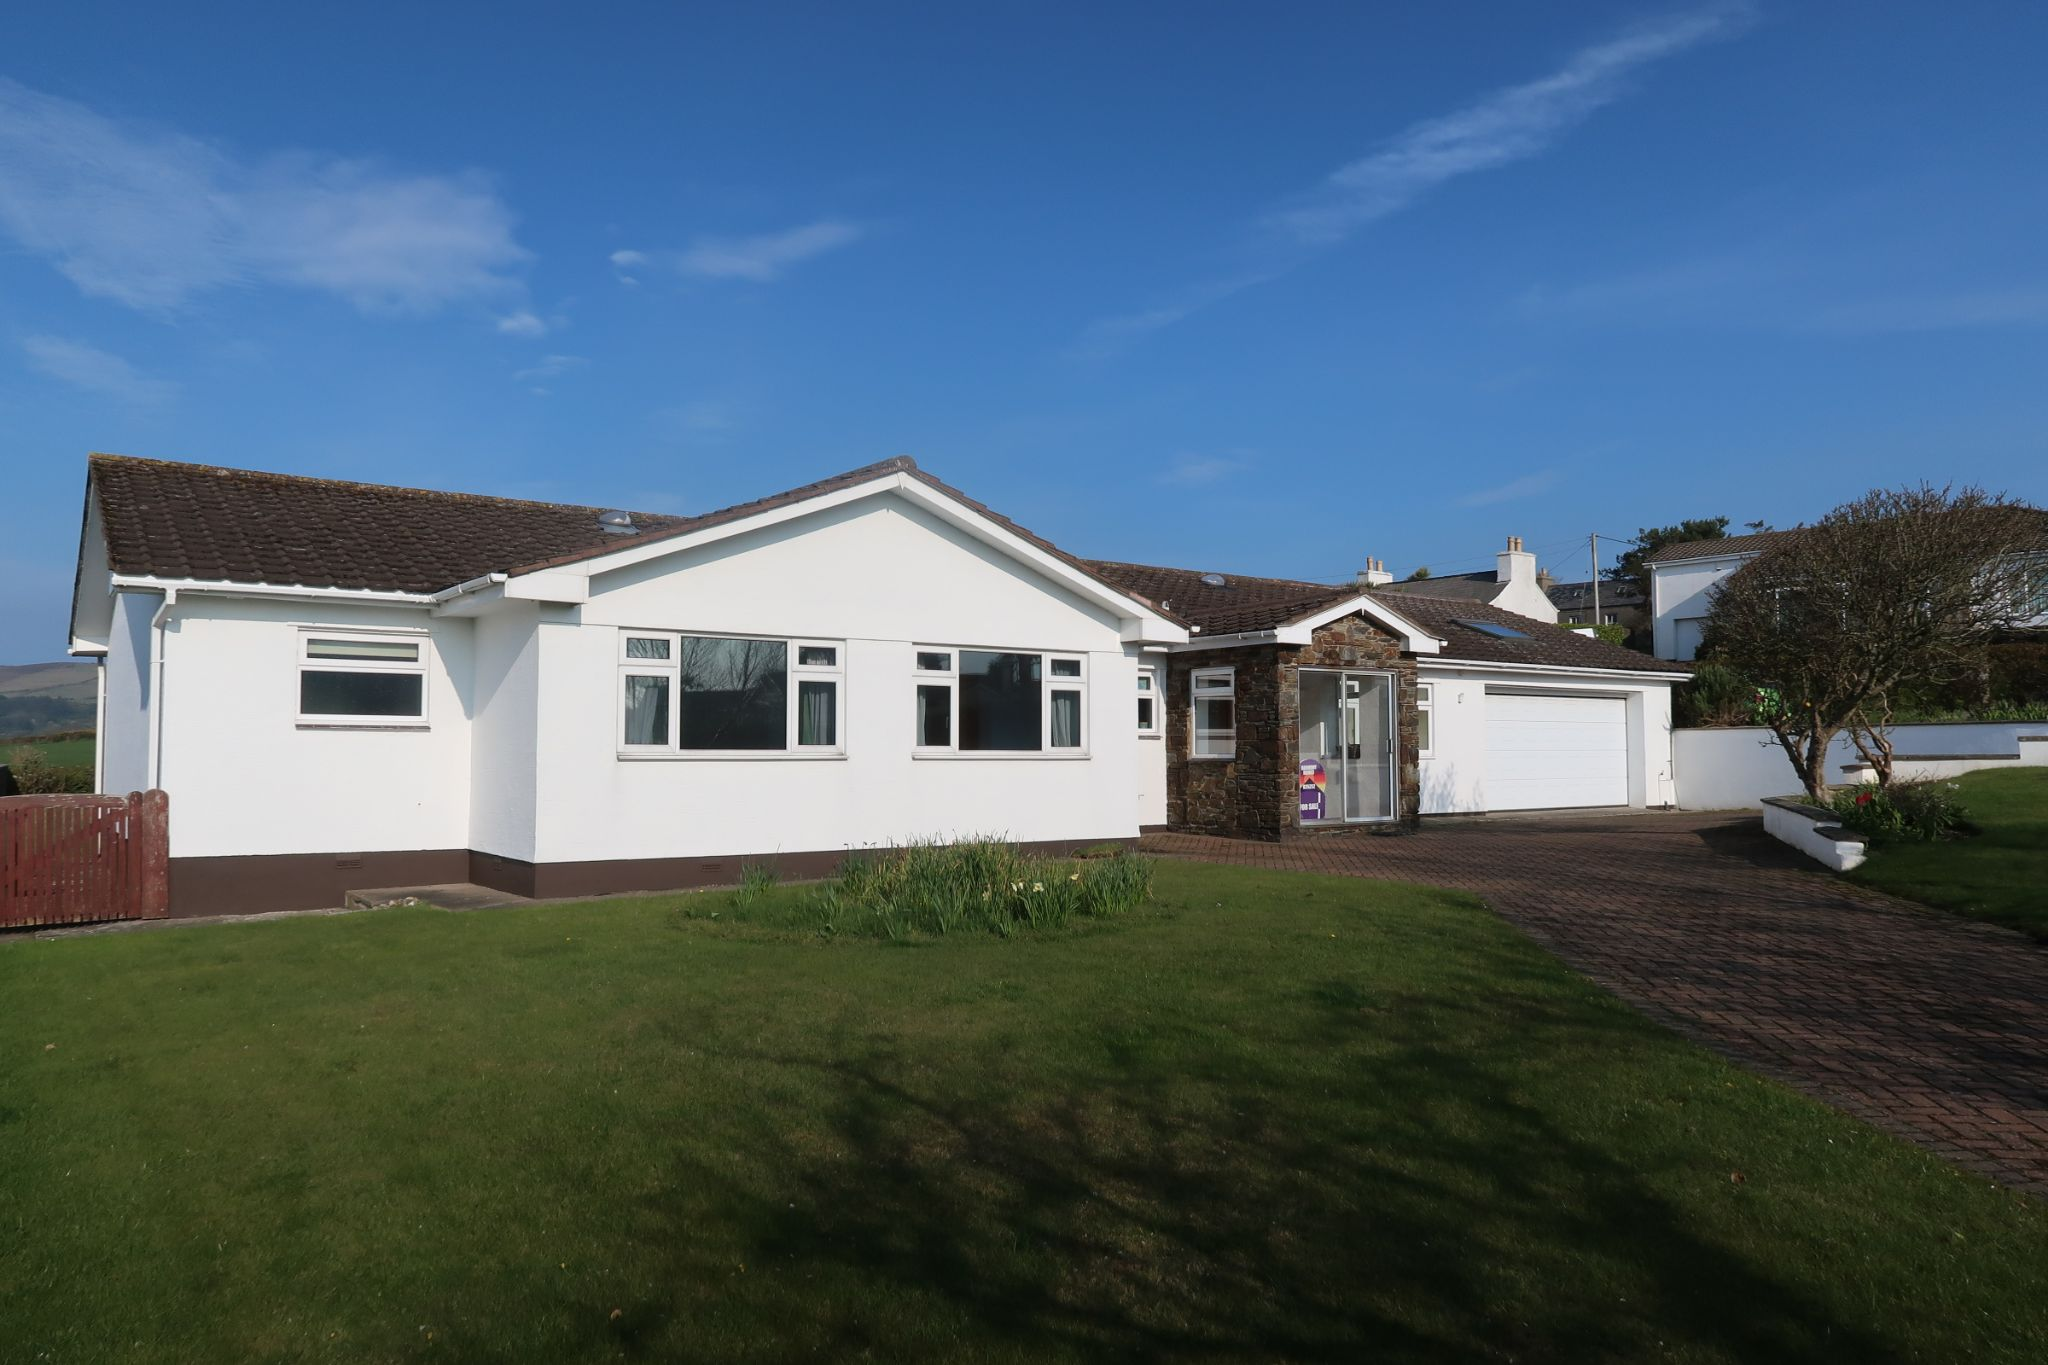 5 bedroom detached bungalow For Sale in Colby - Photograph 1